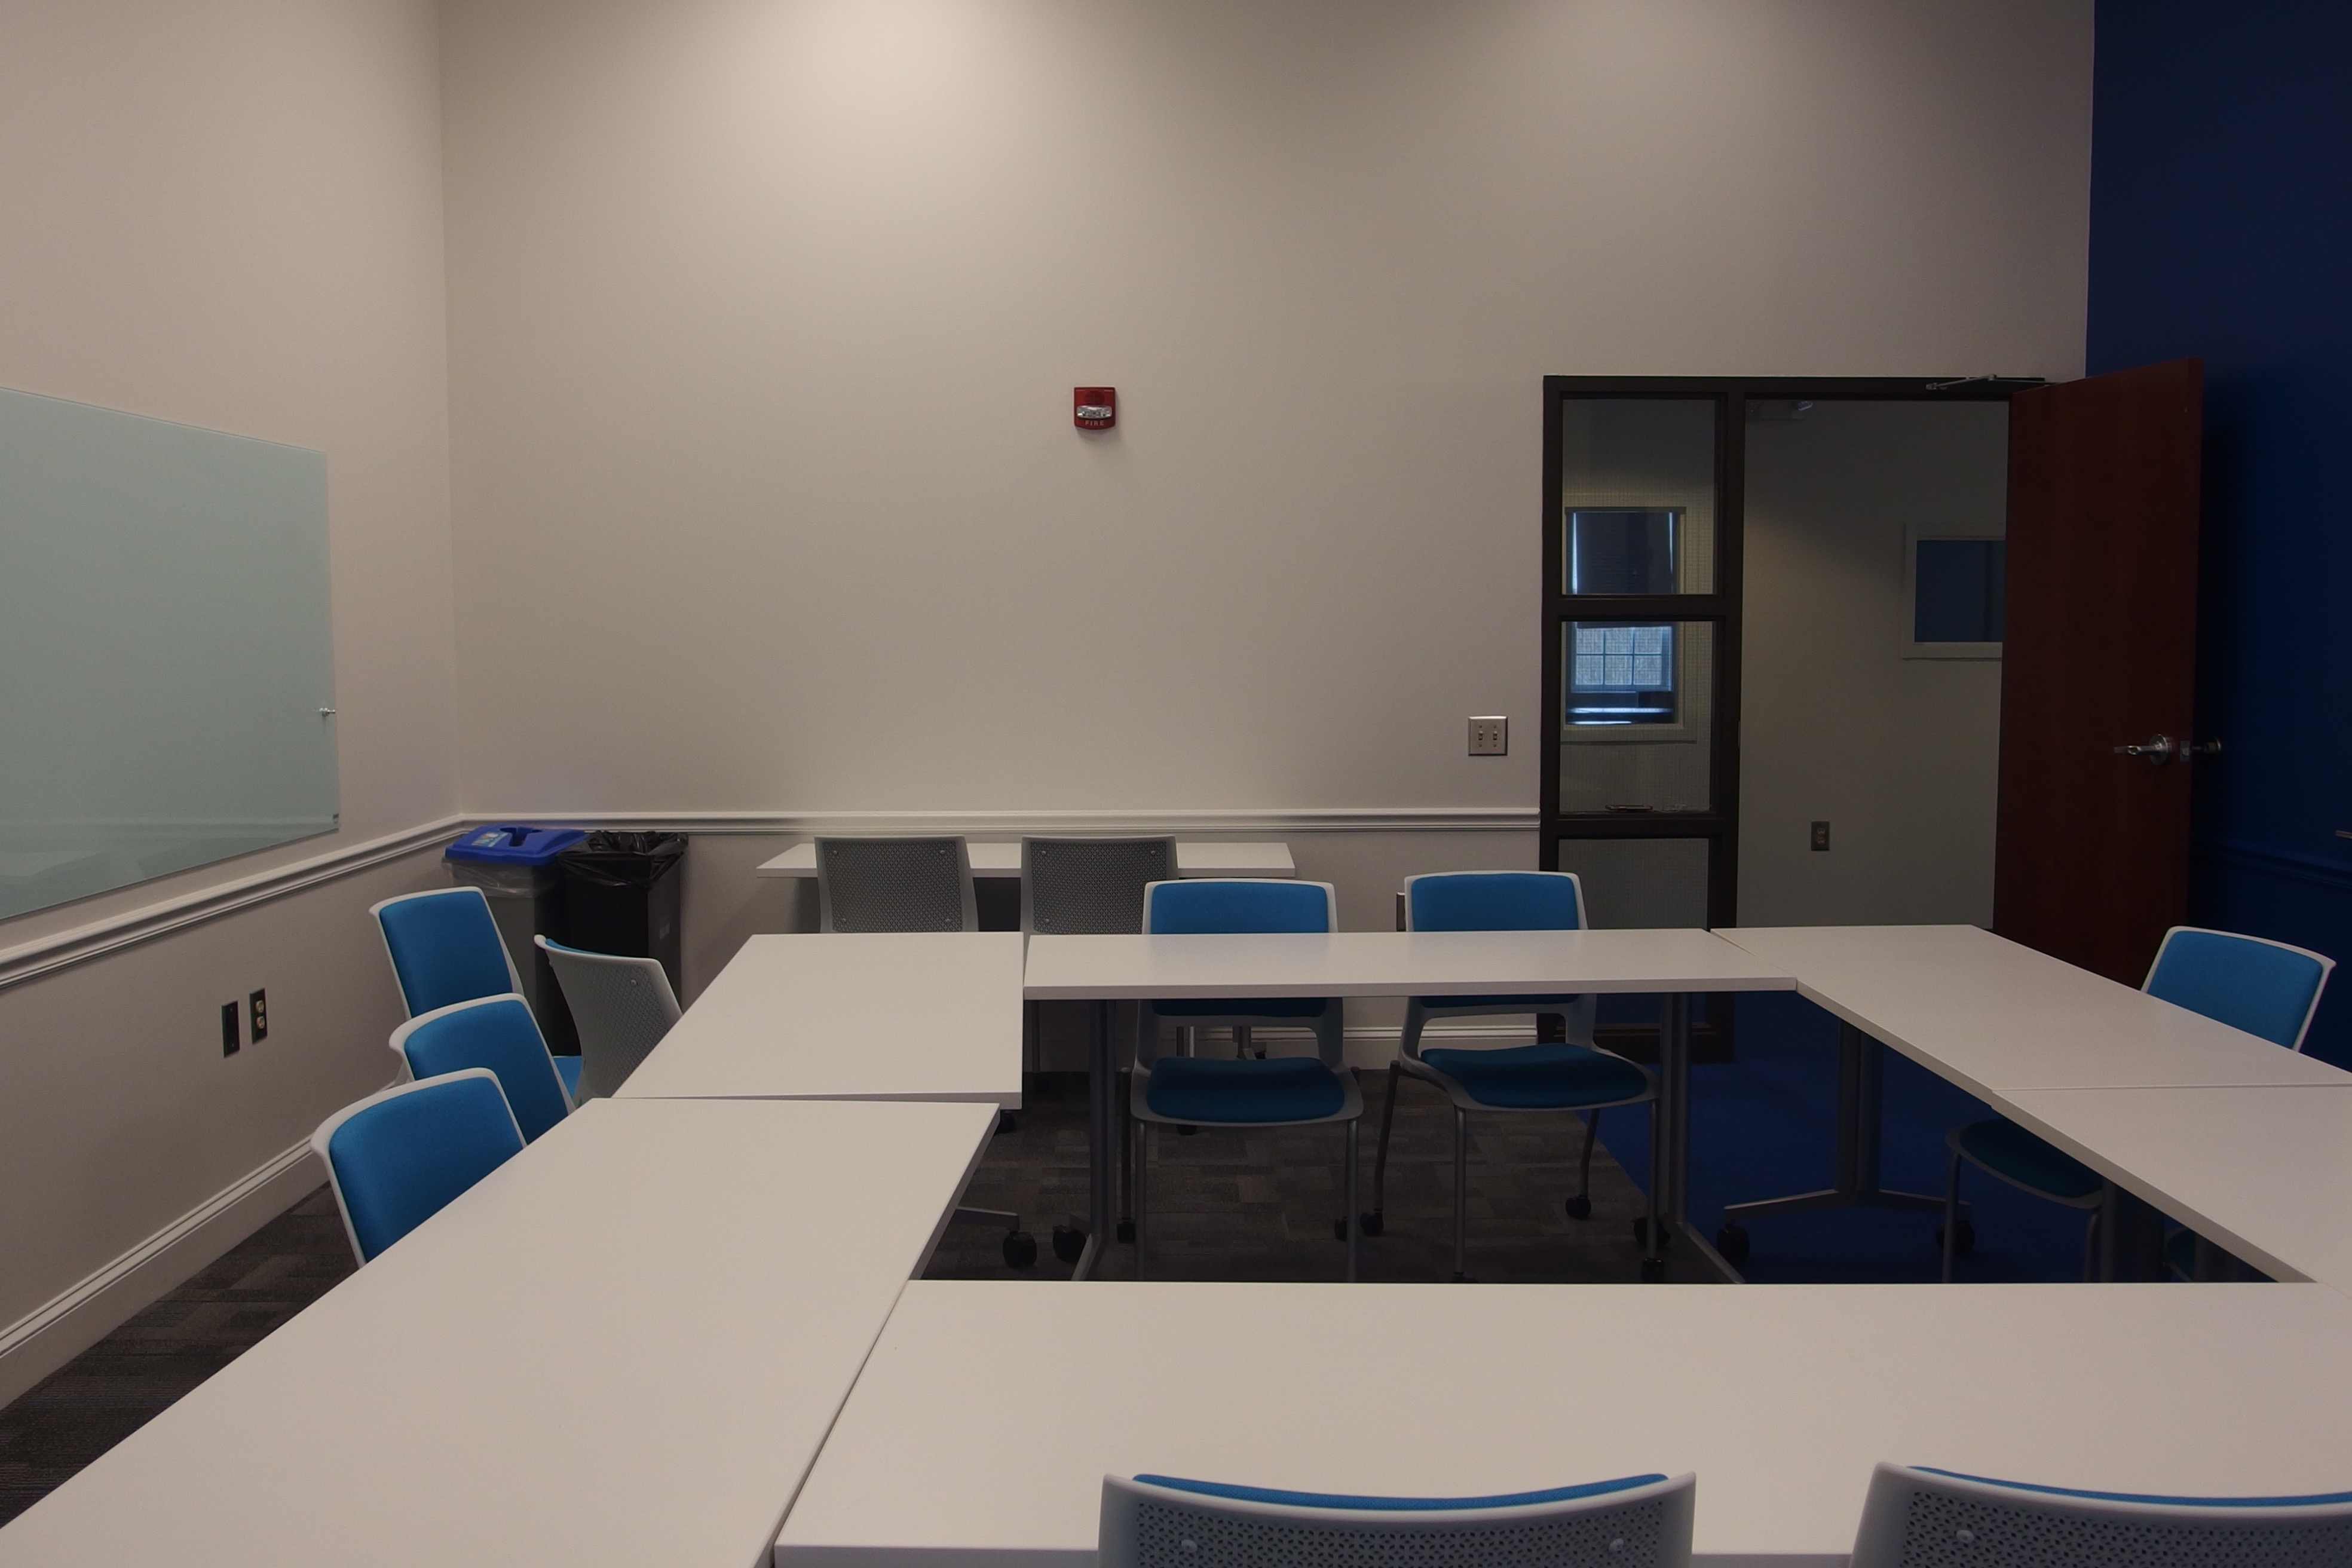 A photo of the room from the side farthest from the door.